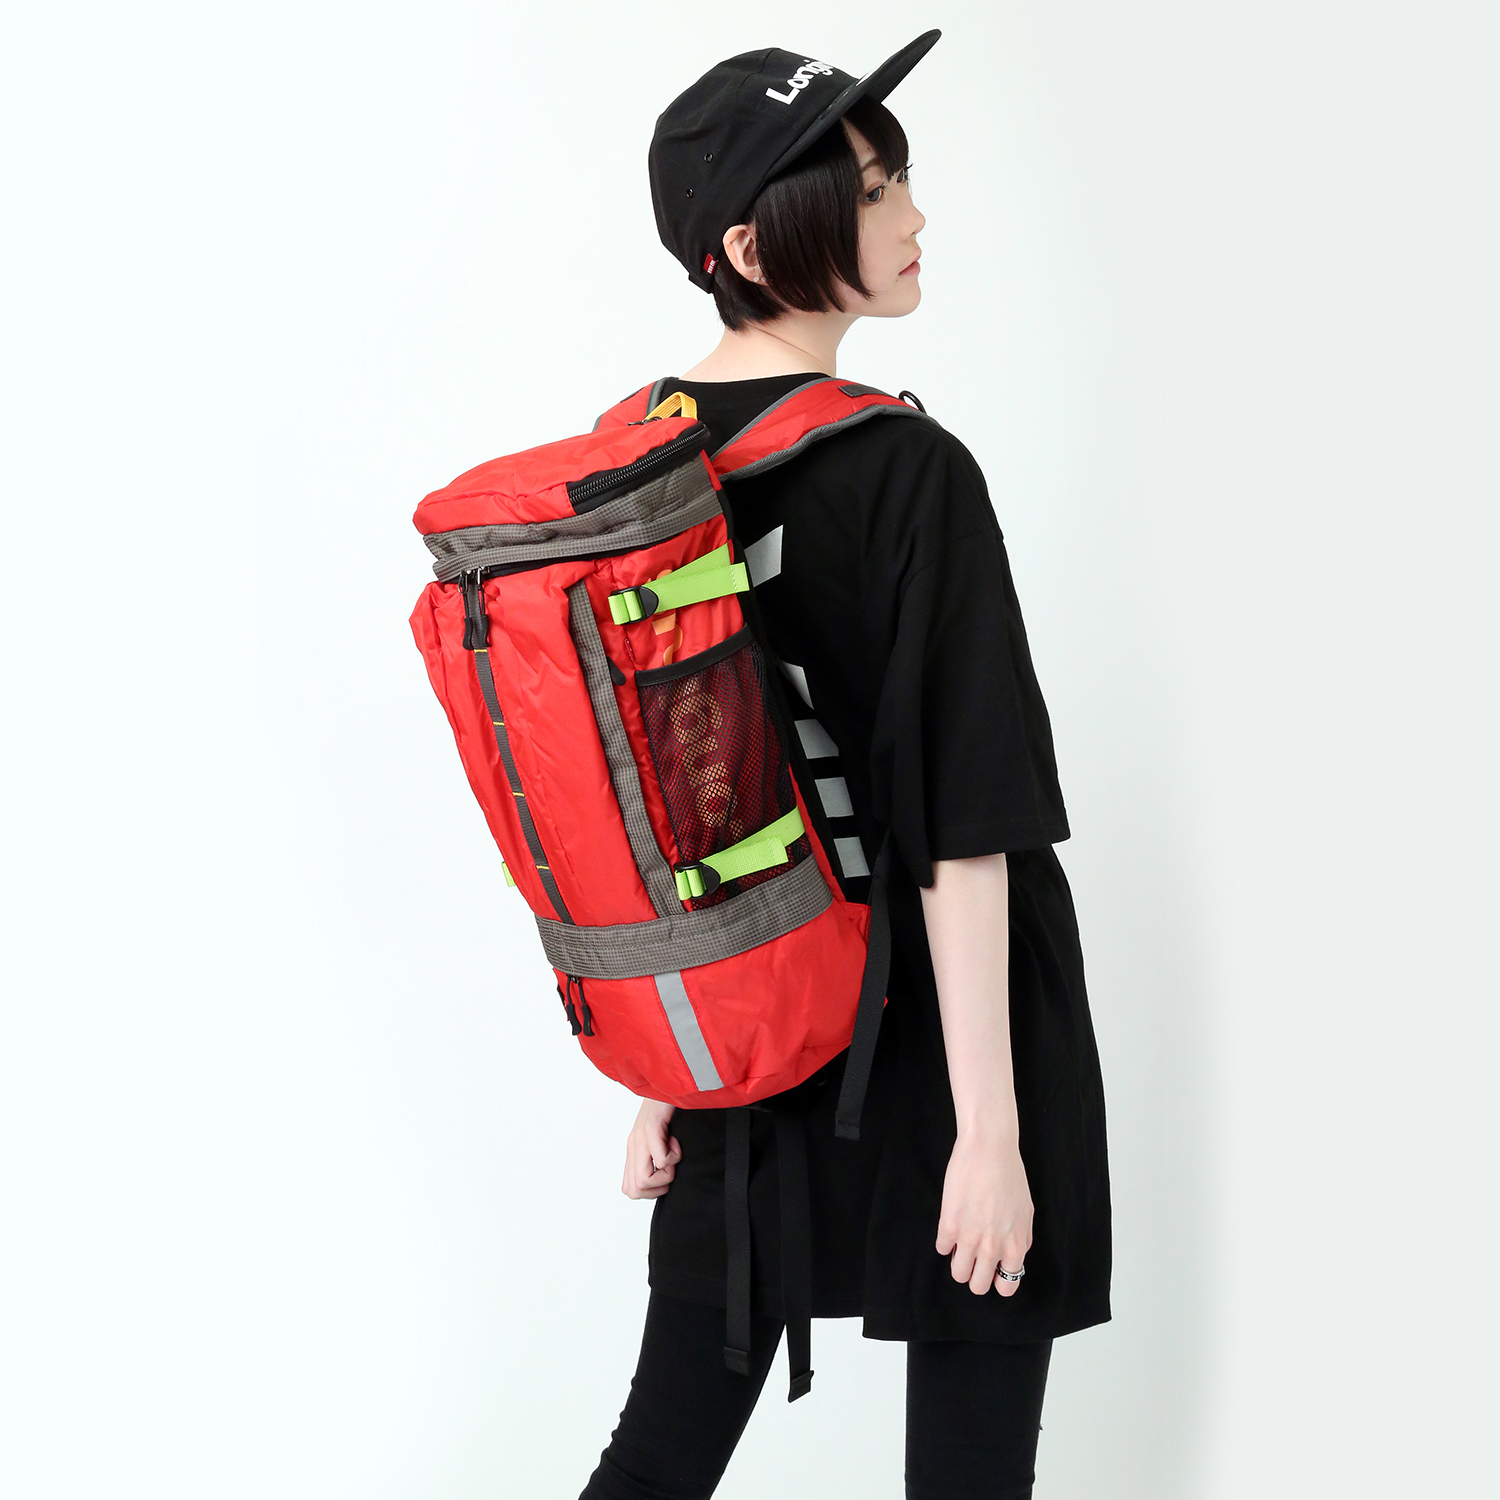 EVANGELION ABOVE ROUND BACK PACK by FIRE FIRST (EVA-02γ MDOEL)